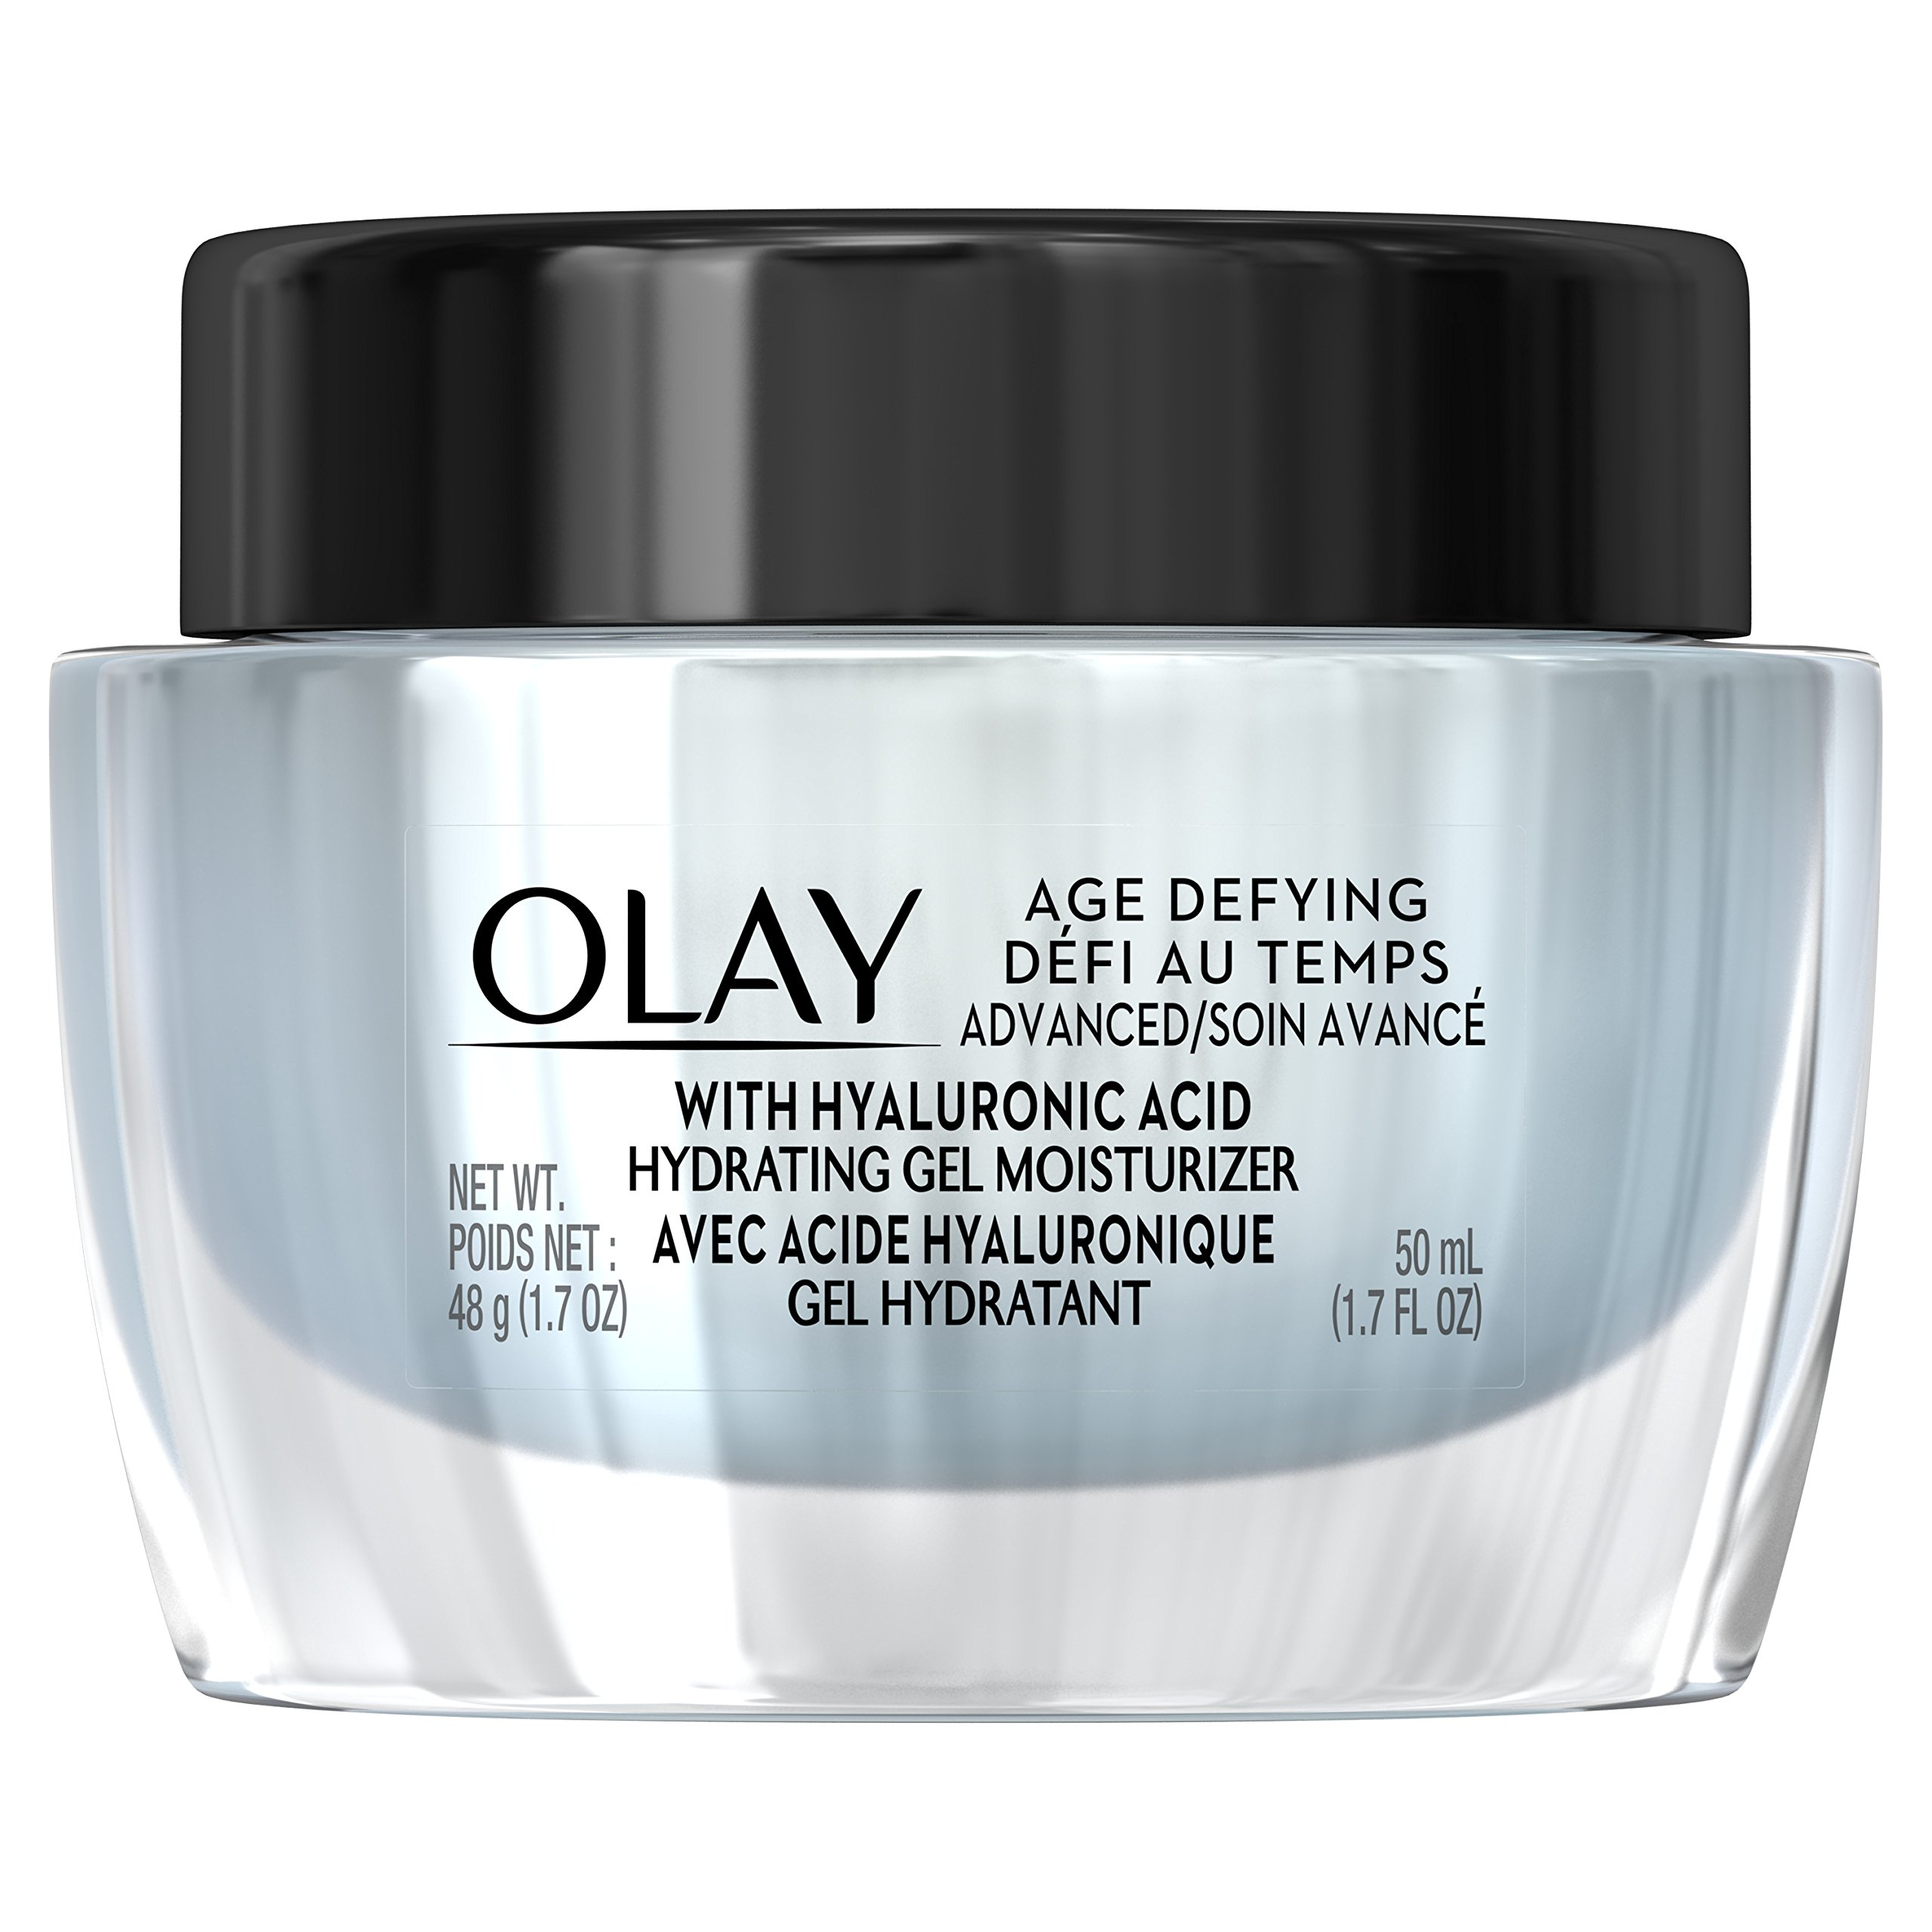 Gel Moisturizer with Hyaluronic Acid by Olay Age Defying, 1.7 fl oz by Olay